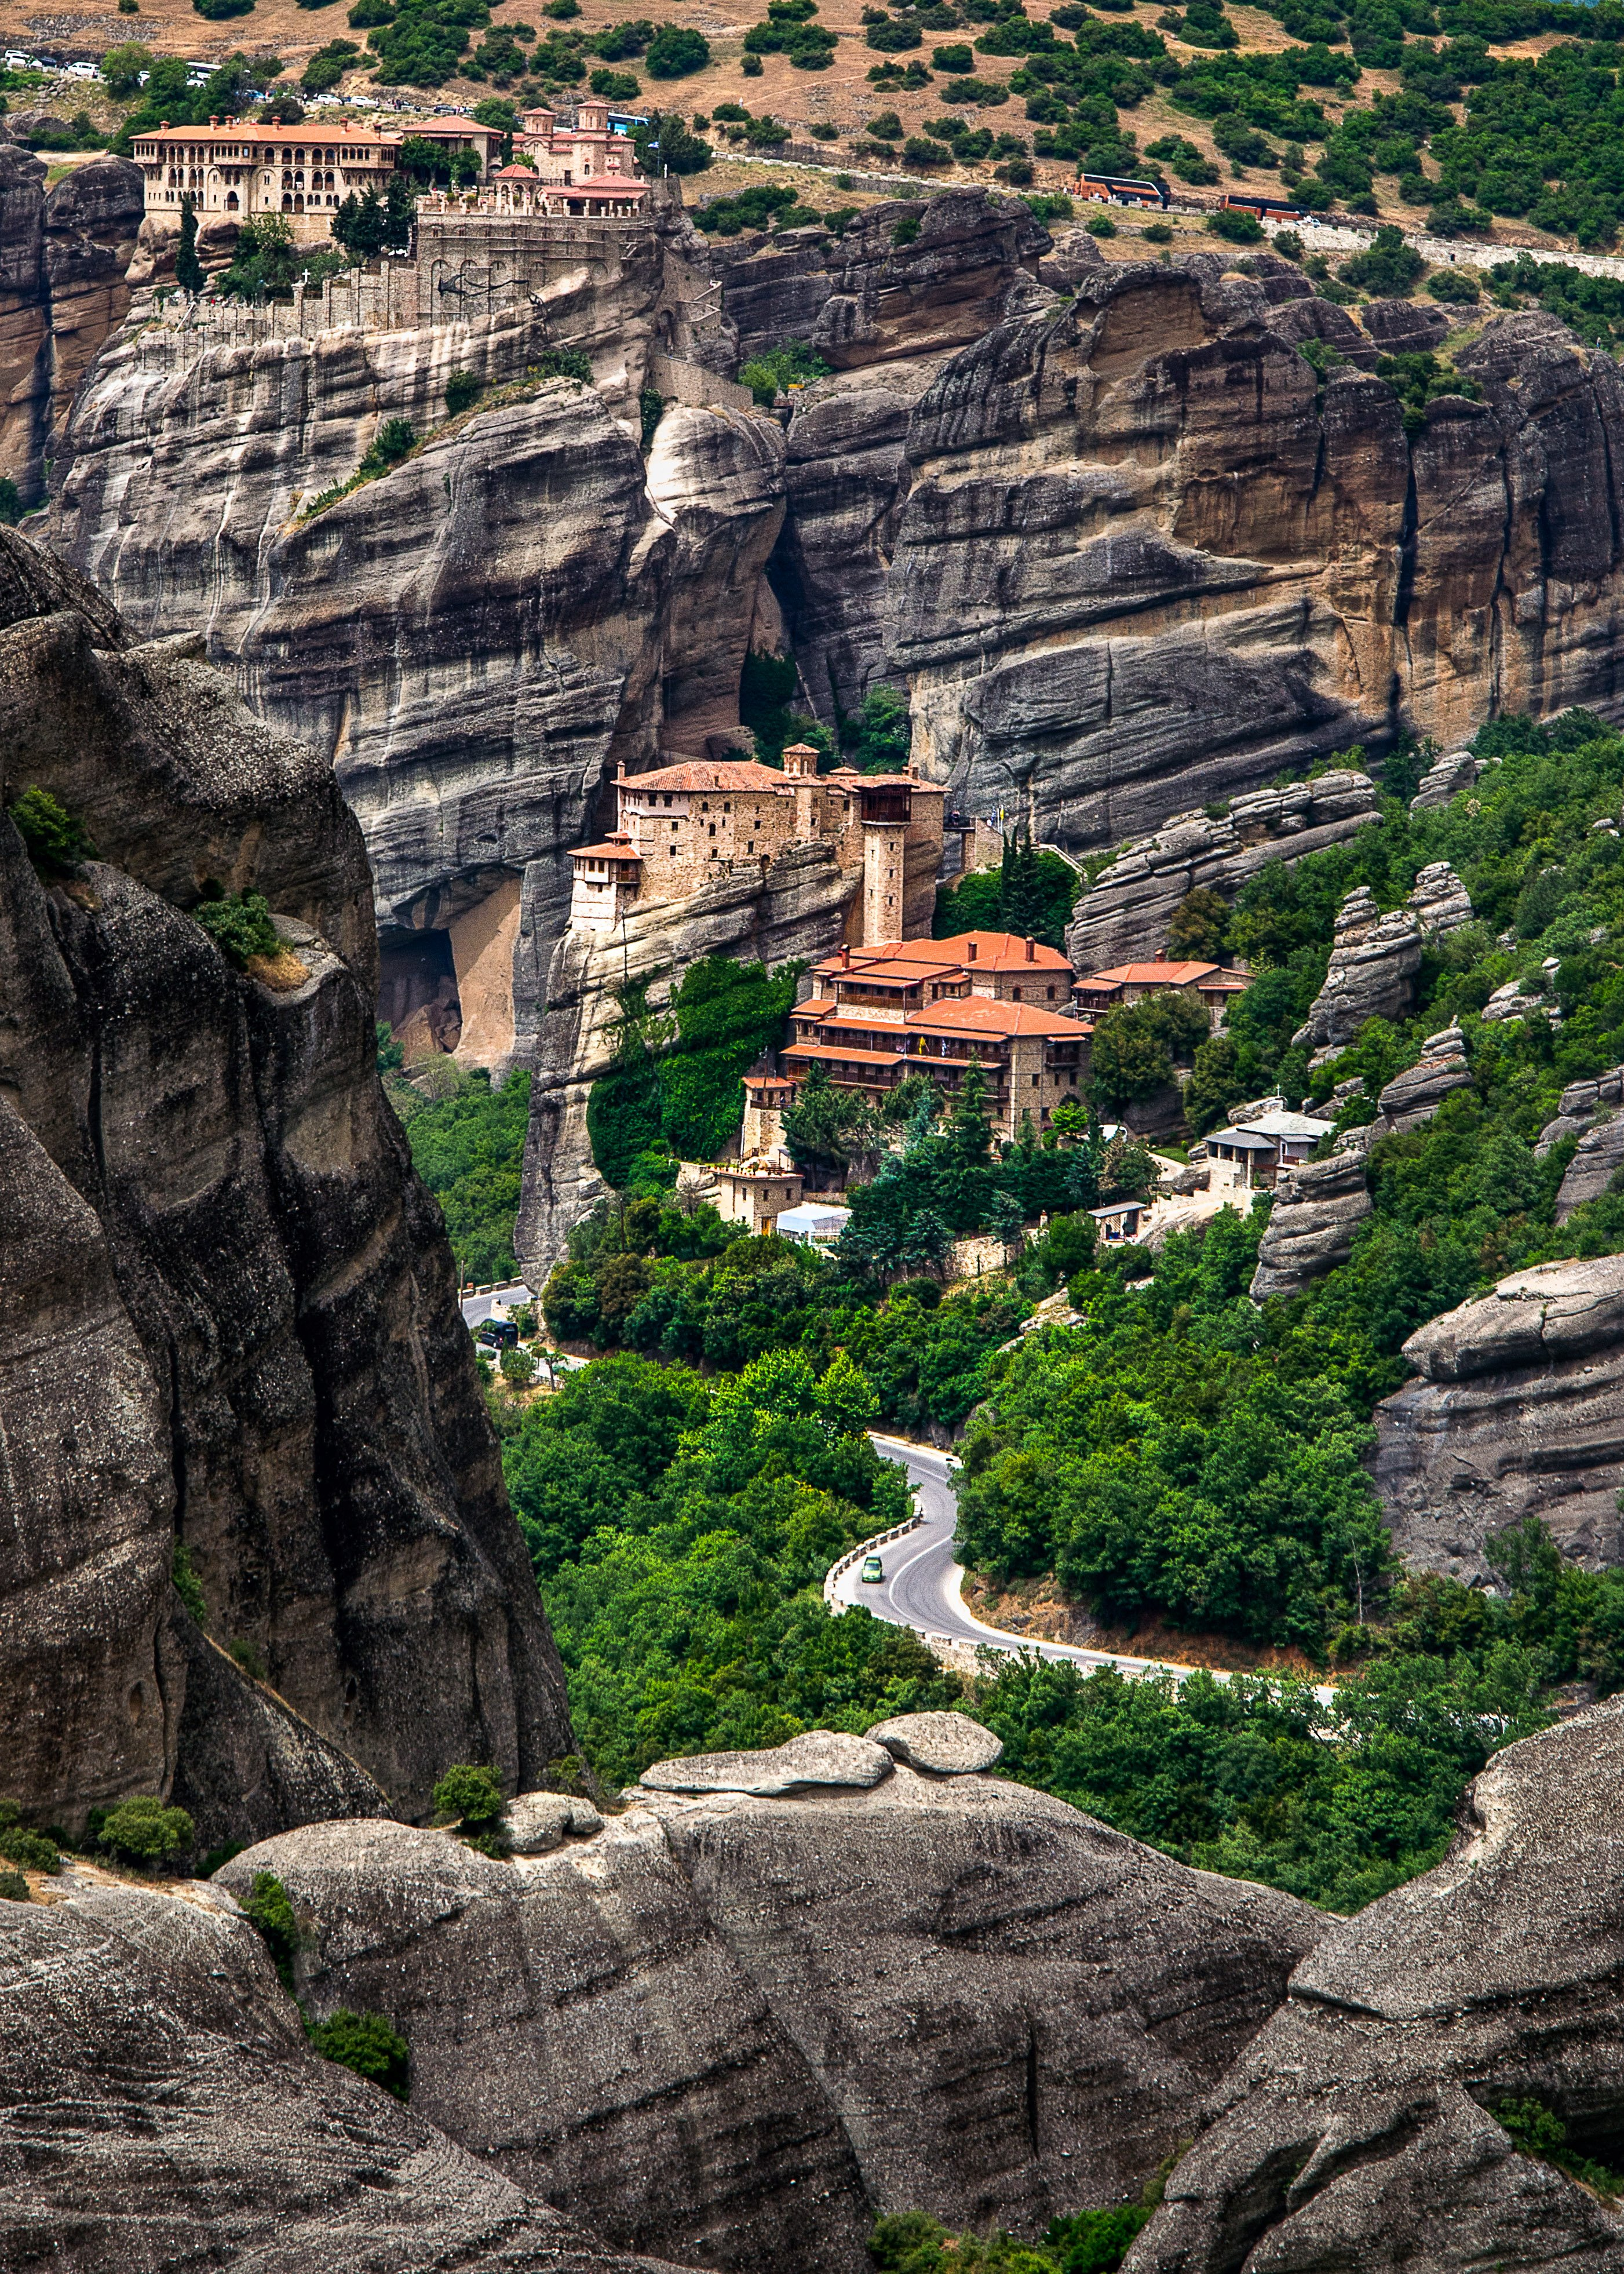 Photography guid by TravelAnubhav to Meteora, Greece